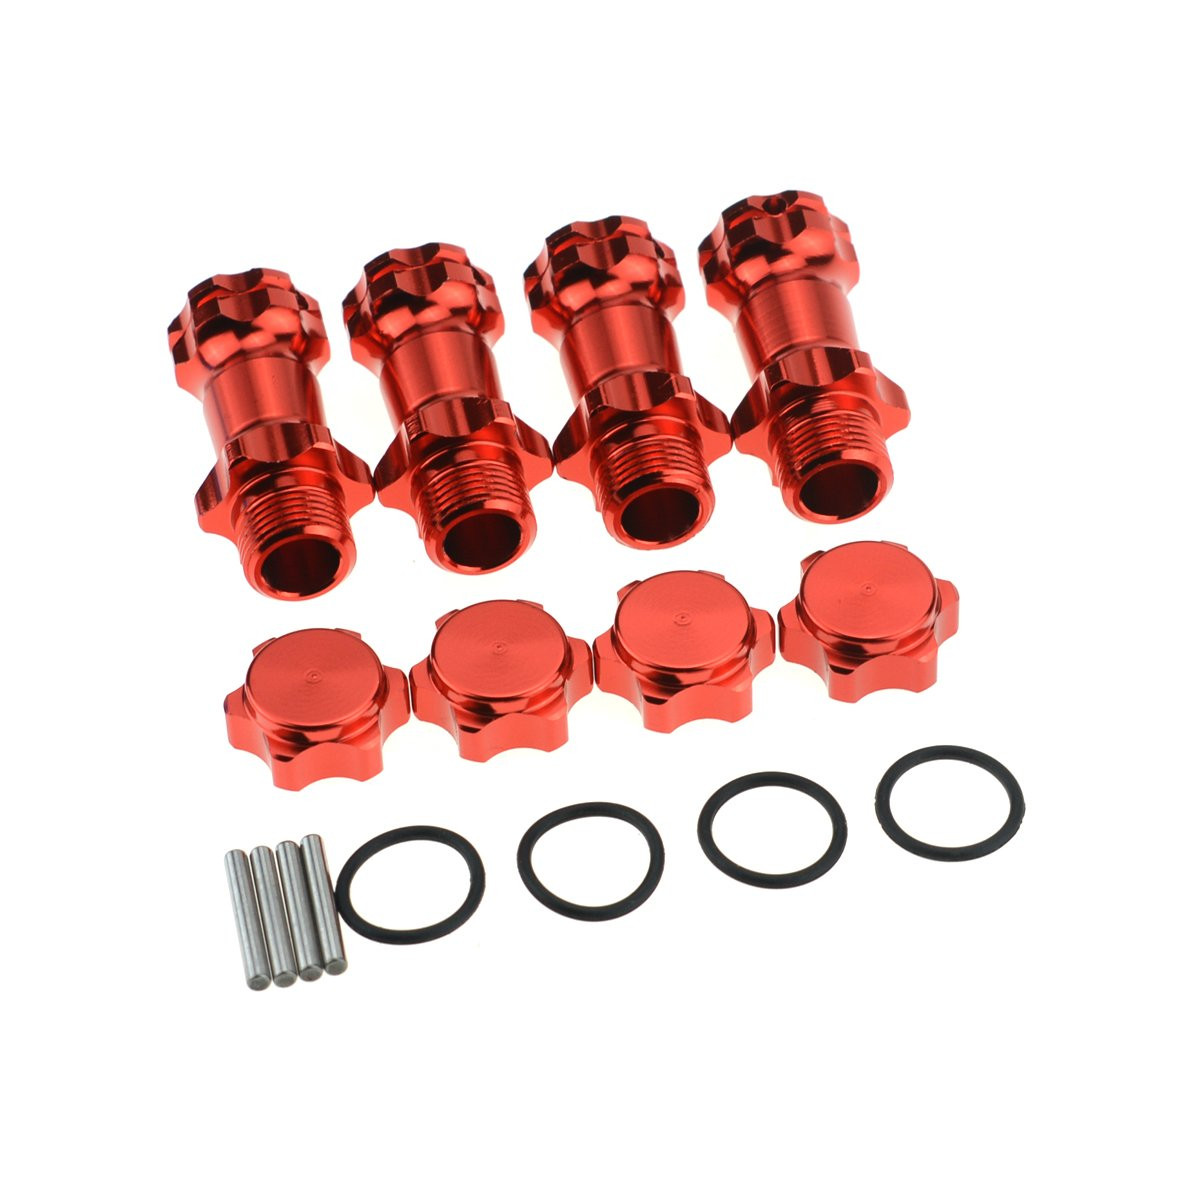 Alloy Wheel Hex Hub M17 17mm Nut Caps Adapter Anti-dust Cover For 1//8 RC HSP HPI